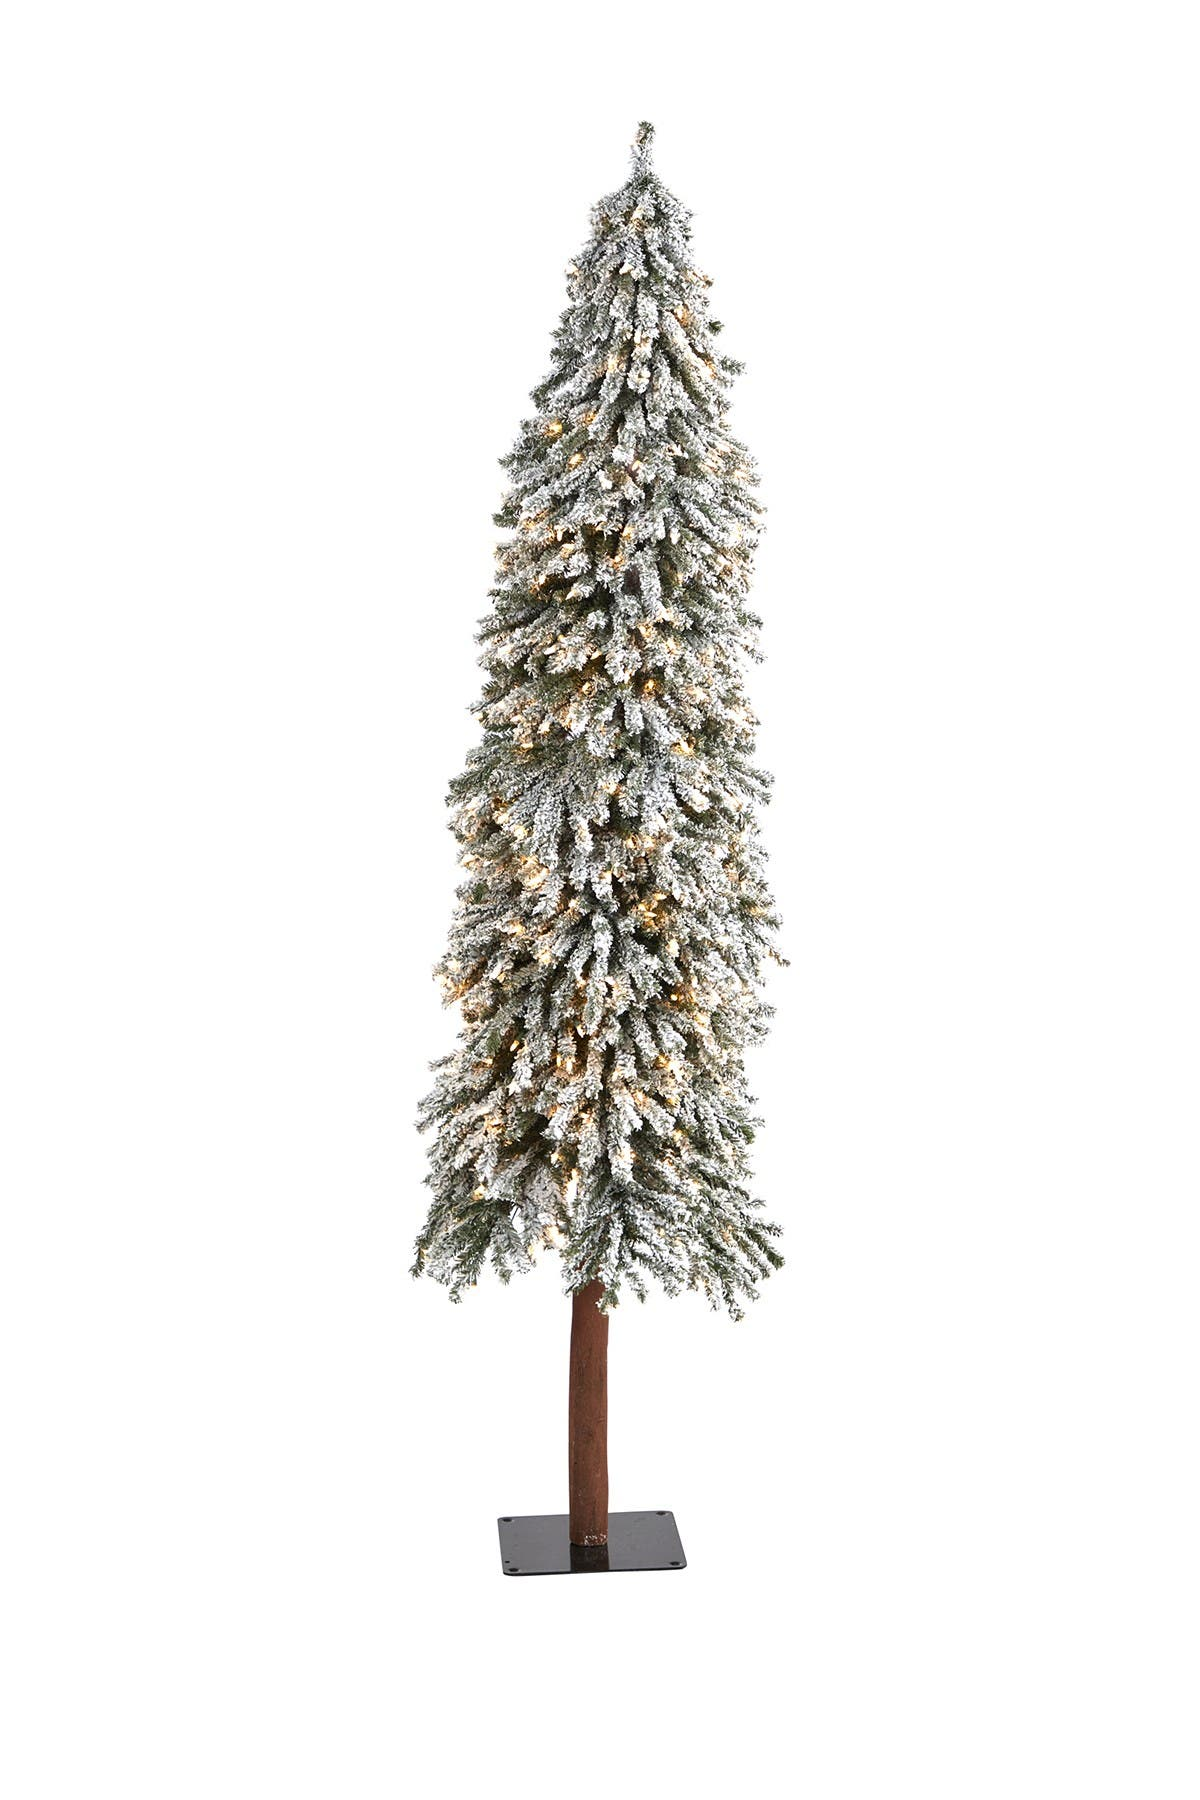 Image of NEARLY NATURAL 7ft. Flocked Grand Alpine Artificial Christmas Tree with 400 Clear Lights on Natural Trunk